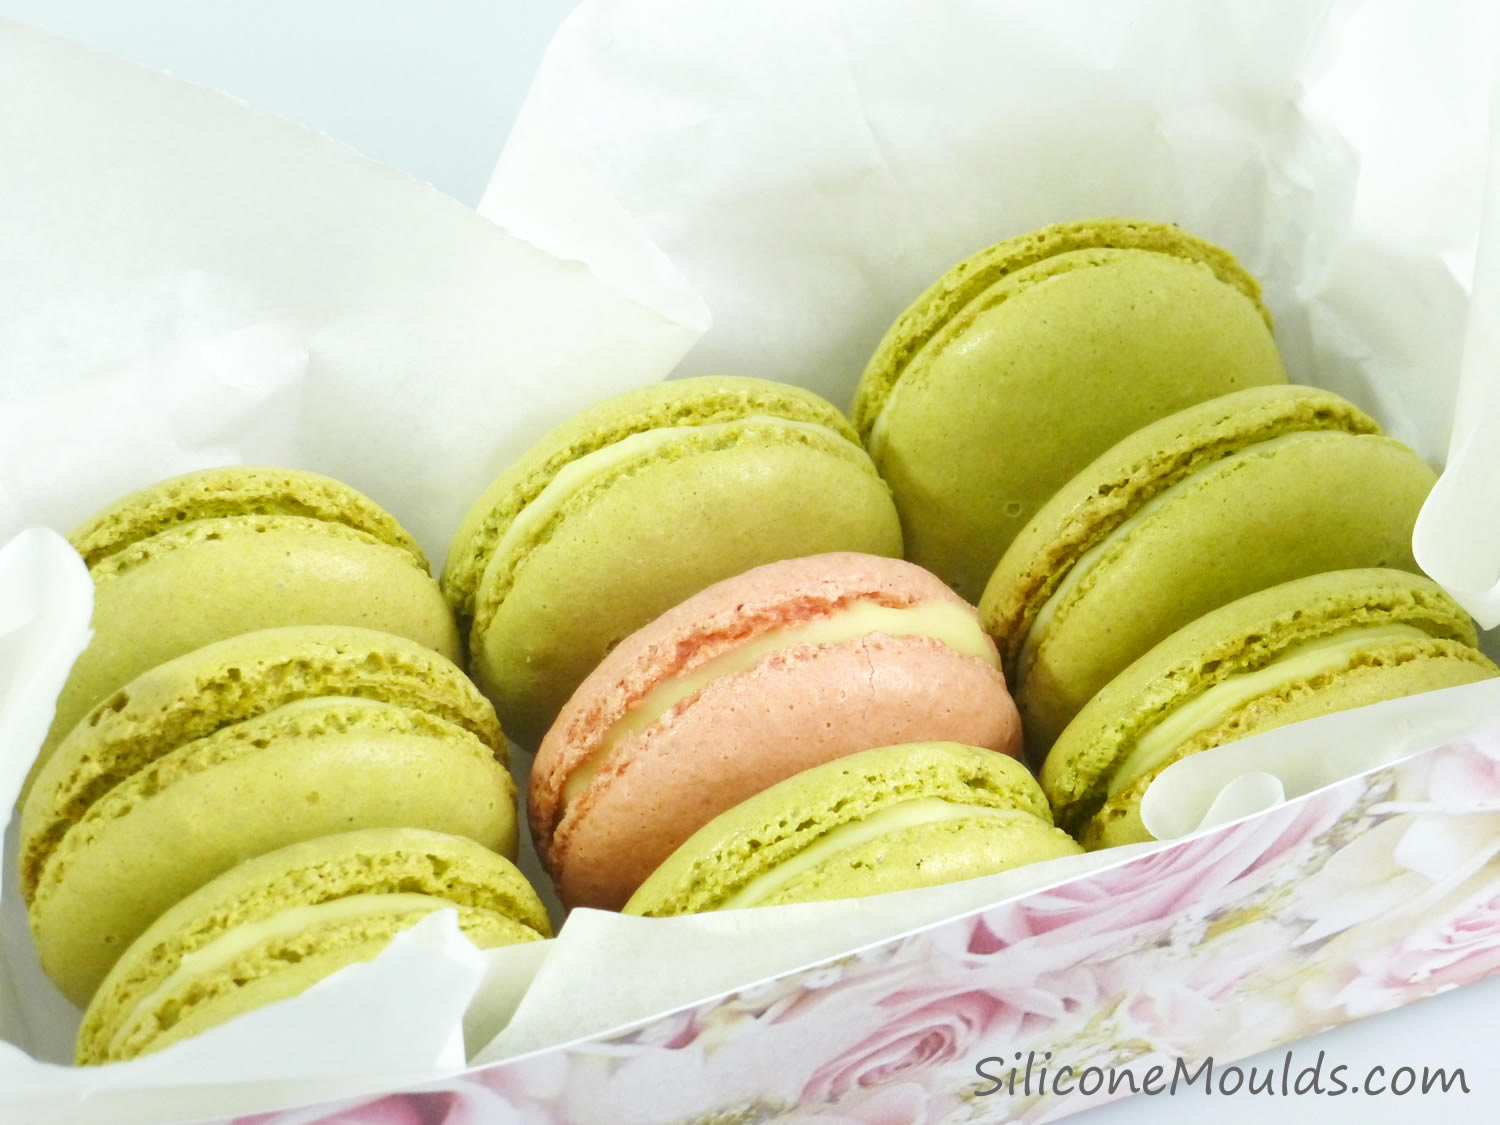 SiliconeMoulds.com Blog: Matcha Green Tea Macarons ...